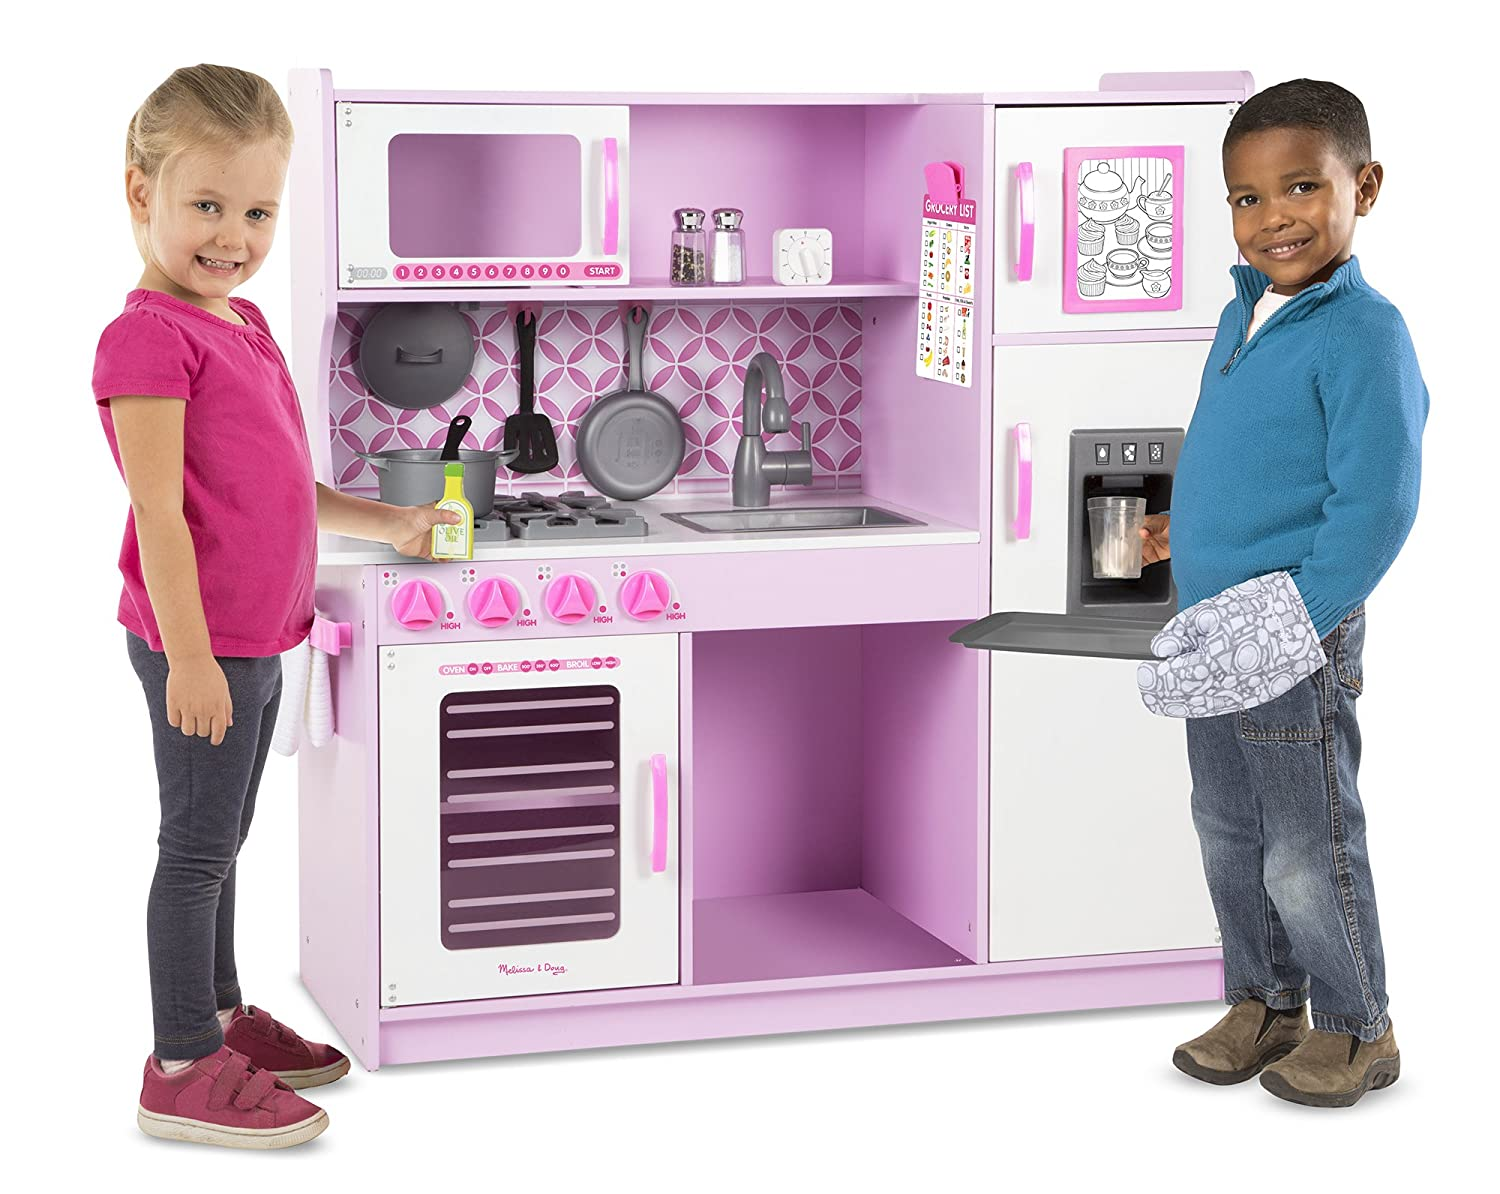 Amazon.com: Melissa U0026 Doug Wooden Chefu0027s Pretend Play Toy Kitchen With  U201cIceu201d Cube Dispenser U2013 Cupcake Pink/White: Toys U0026 Games